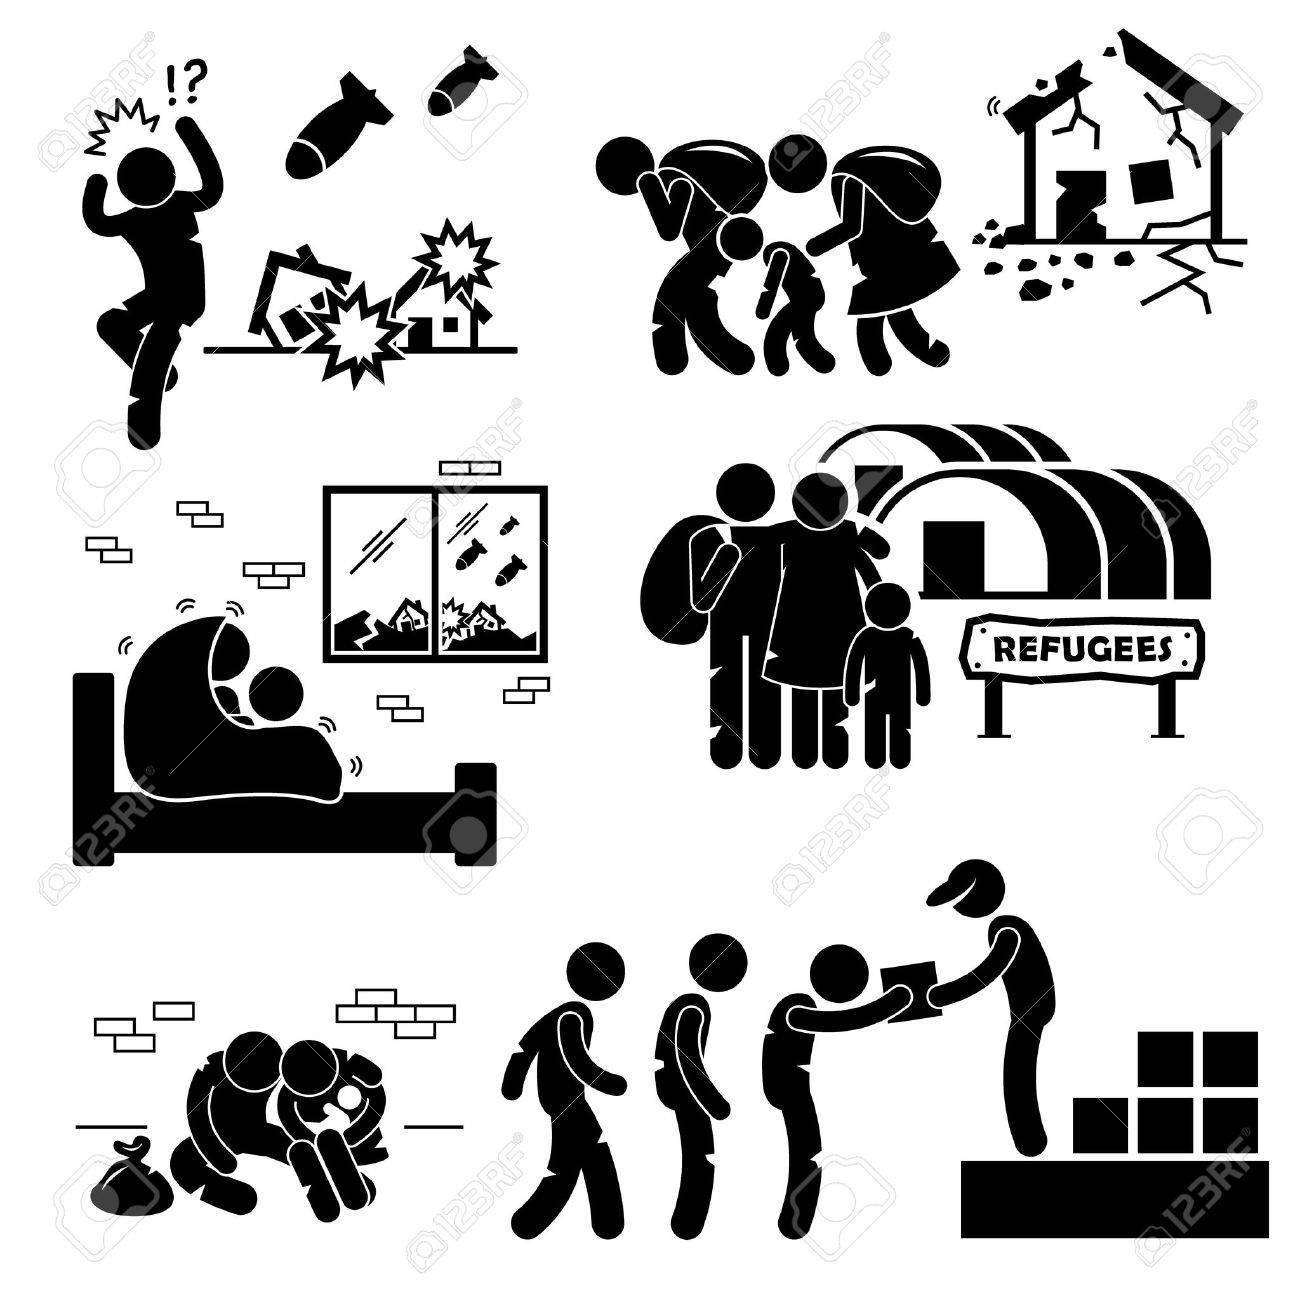 Refugee clipart 4 » Clipart Station.